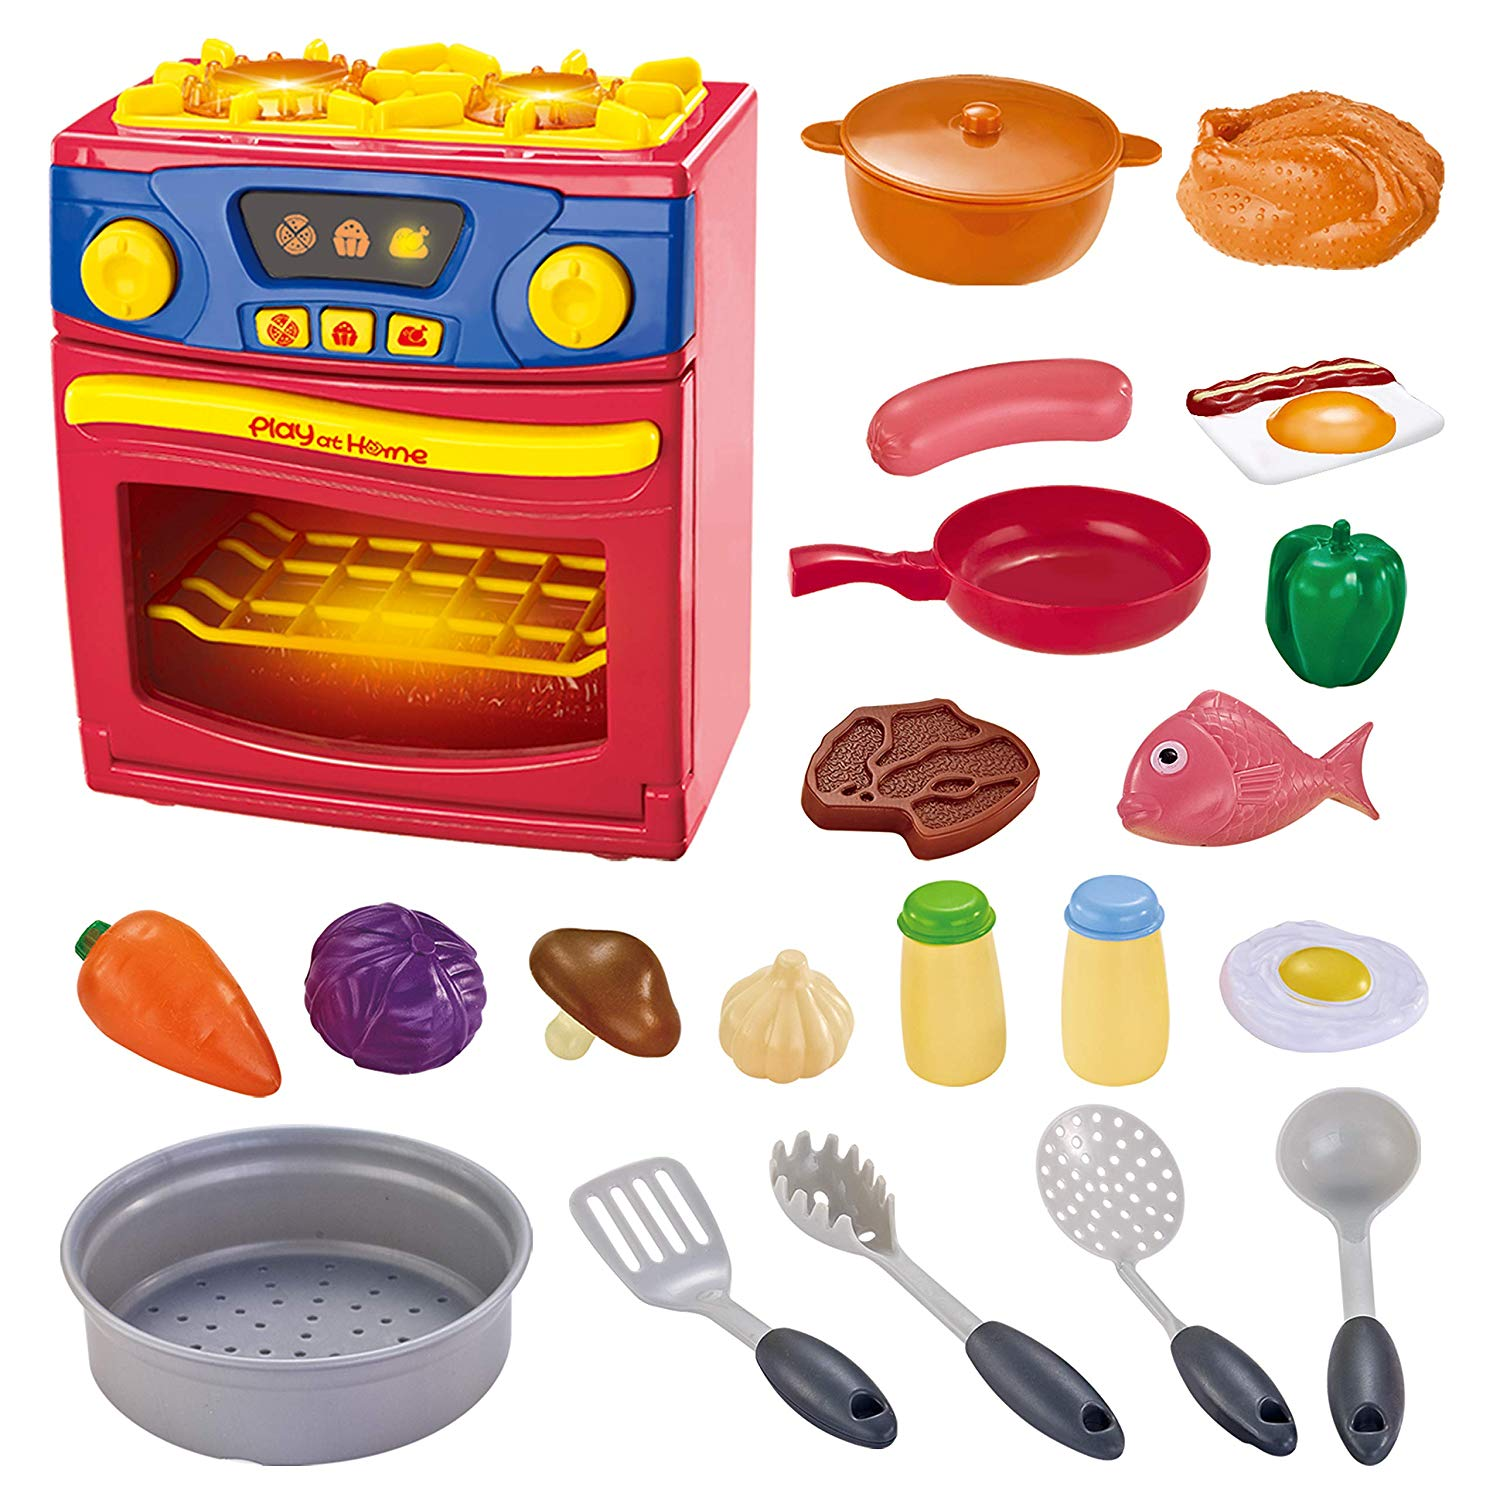 21 Piece Play Kitchen Oven Cooking Pretend Play